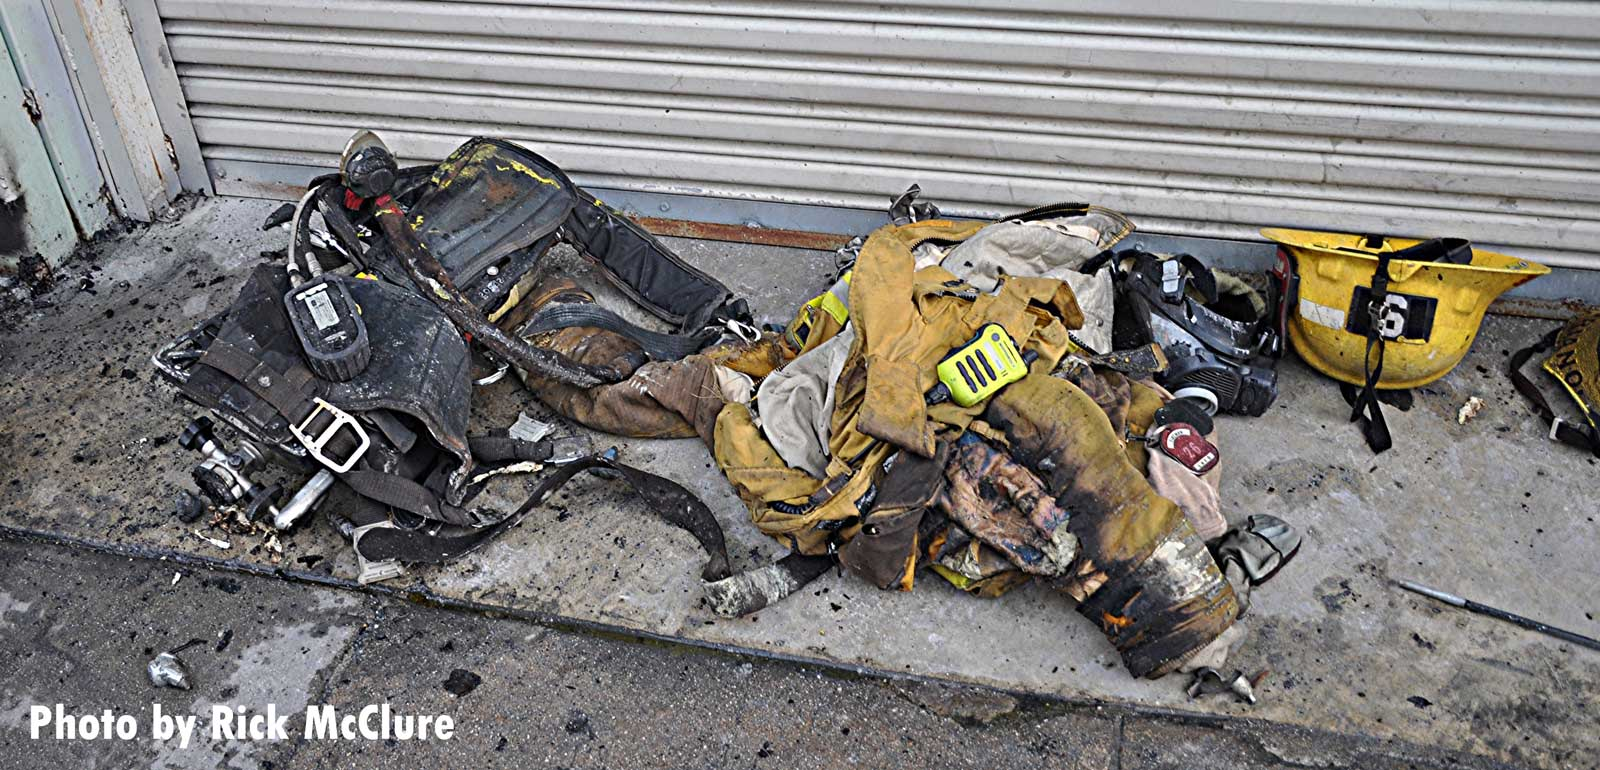 Damaged fire gear